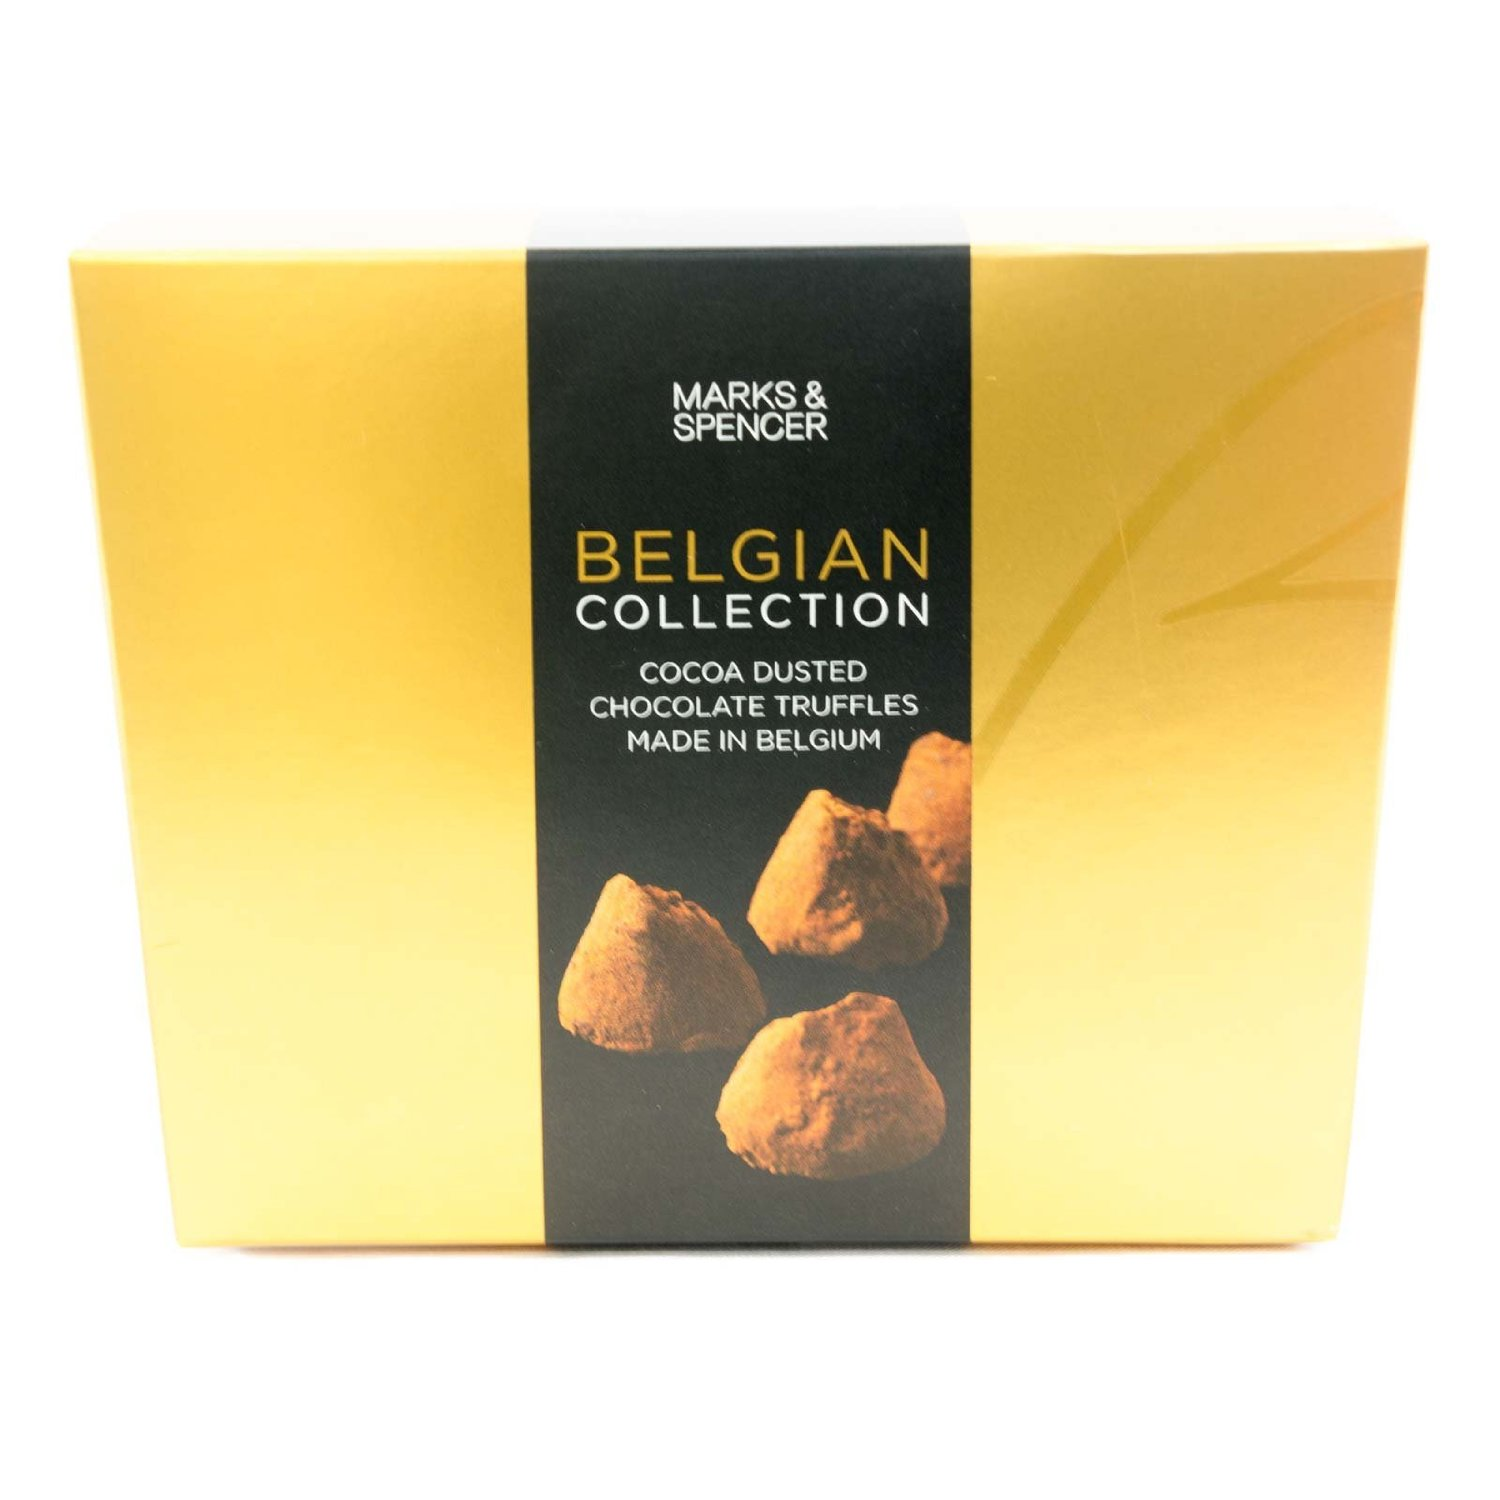 Ms Marks Spencer Belgian Collection Cocoa Dusted Chocolate Truffles 260g From The Uk